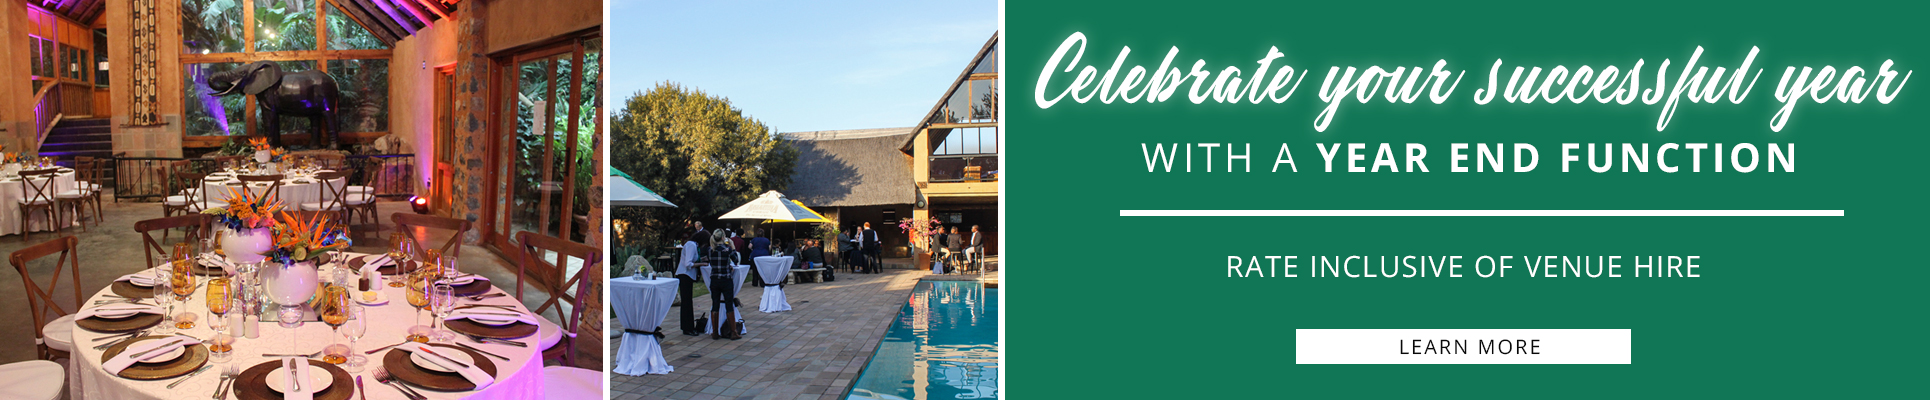 Misty Hills Country Hotel Year End Function Specials Muldersdrift Gauteng venues 2019